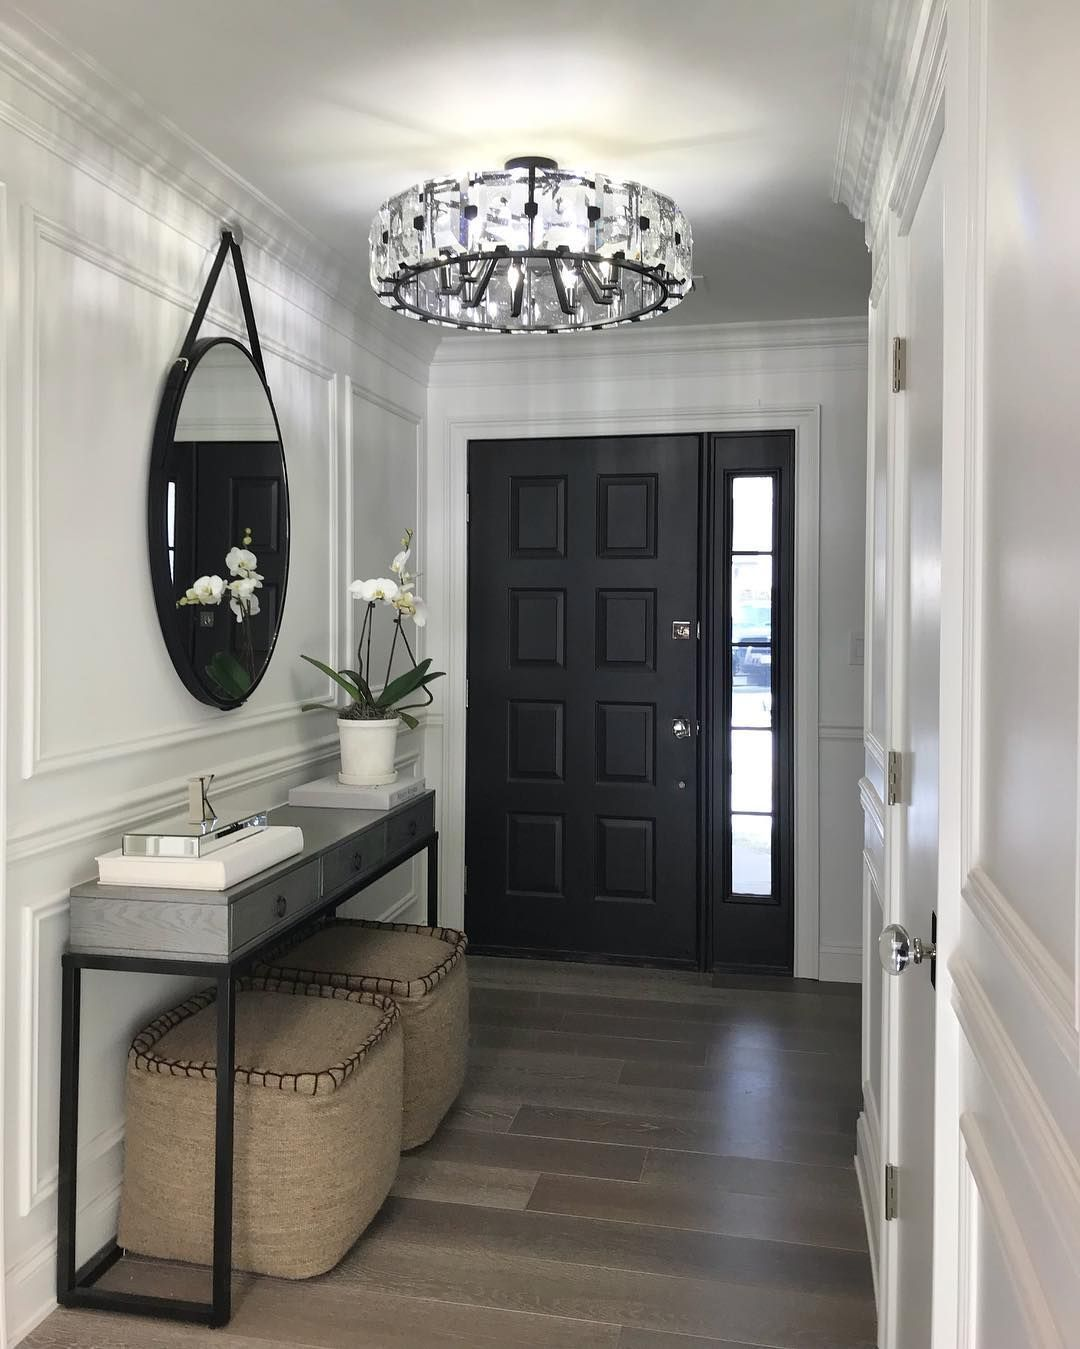 My Foyer Is Finally Finished It Took A Long Time To Find The Perfect Chandelier F Chandelier In Living Room Foyer Lighting Low Ceiling Foyer Lighting Fixtures